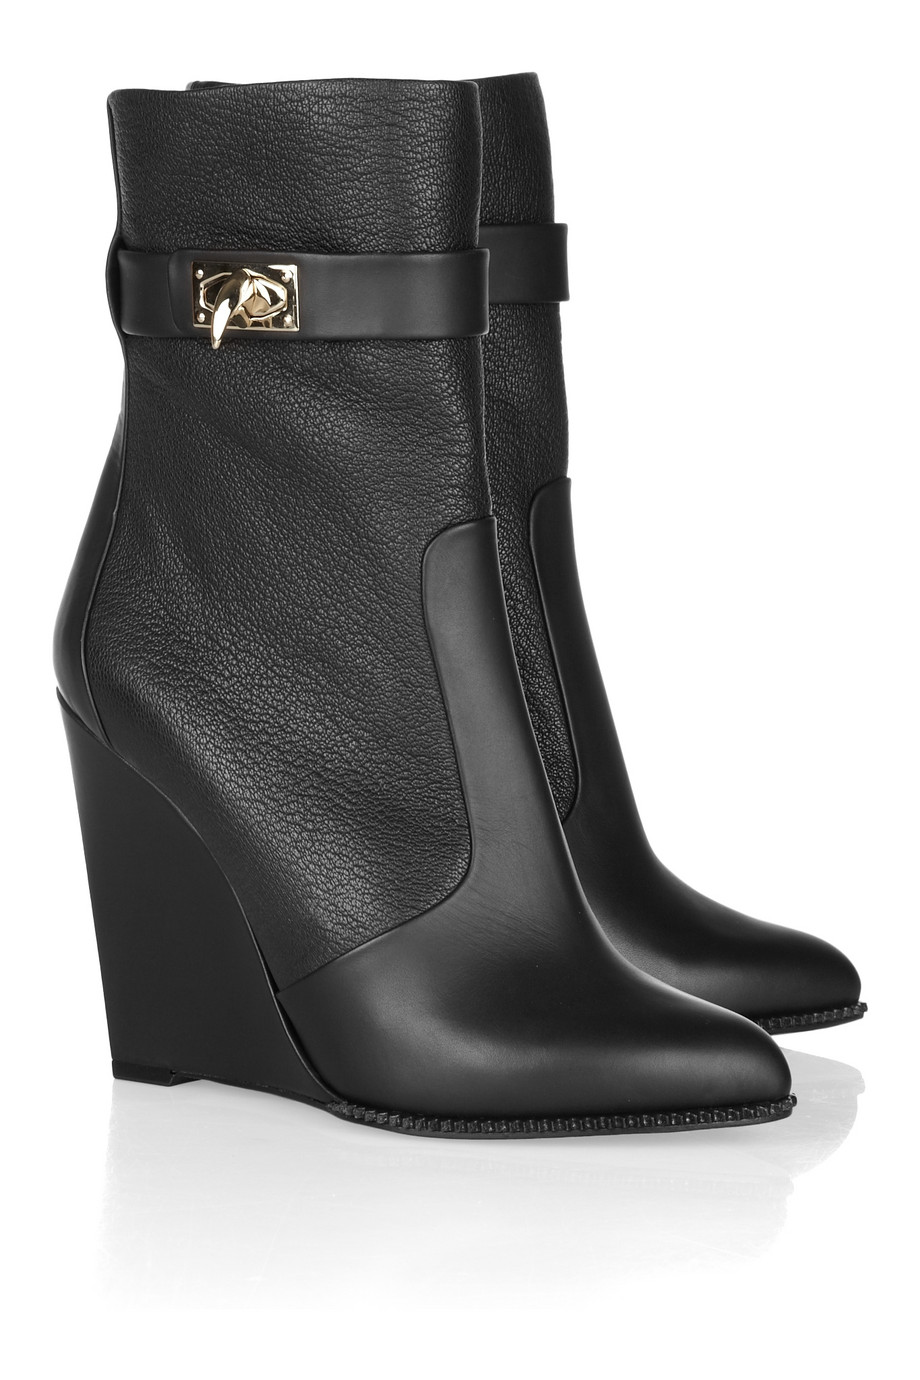 Givenchy Leather Wedge Ankle Boots in Black | Lyst